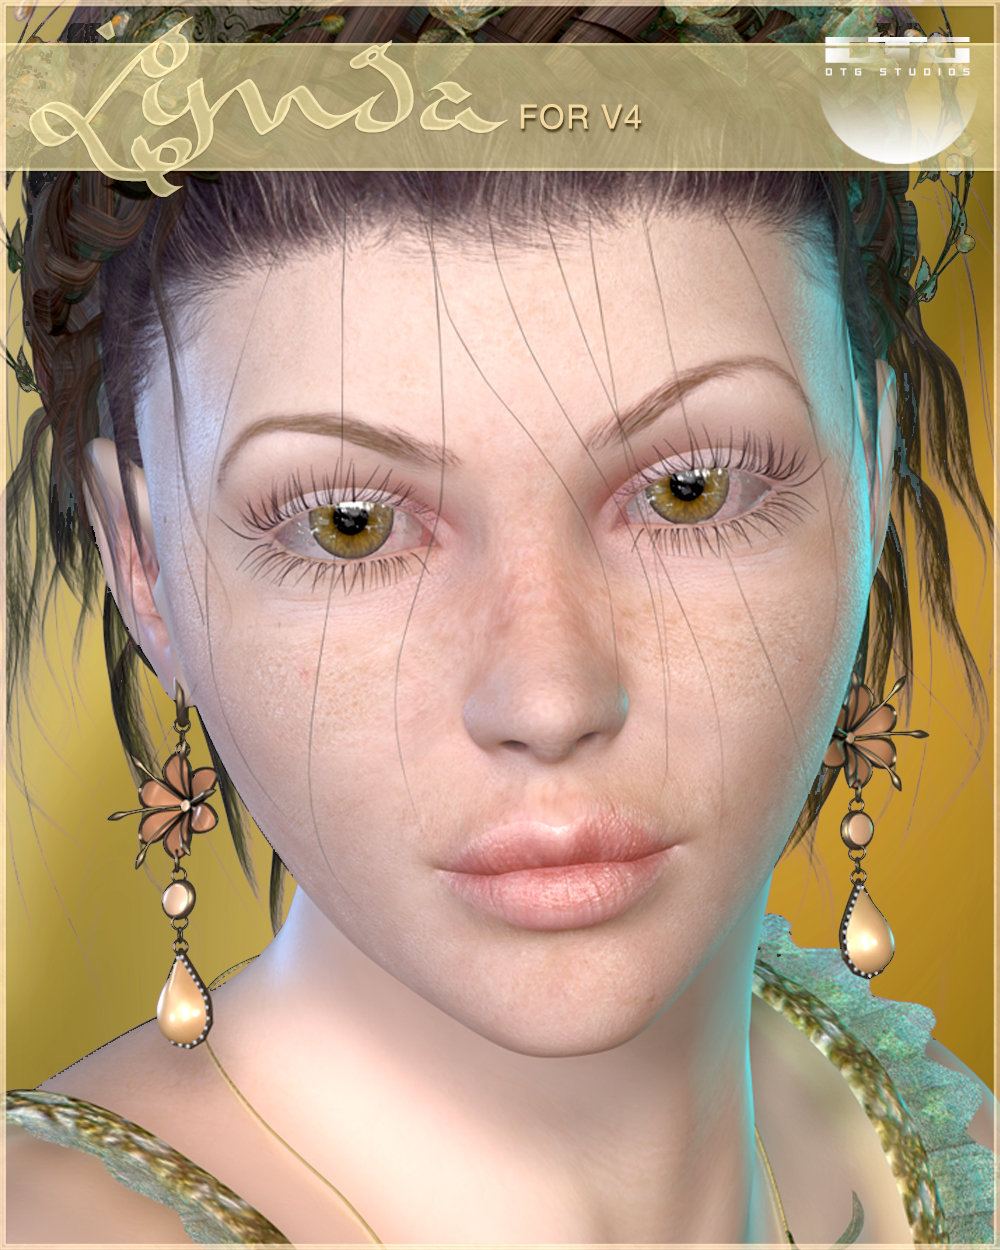 DTG Studios' Lynda for V4.2 by DTHUREGRIF